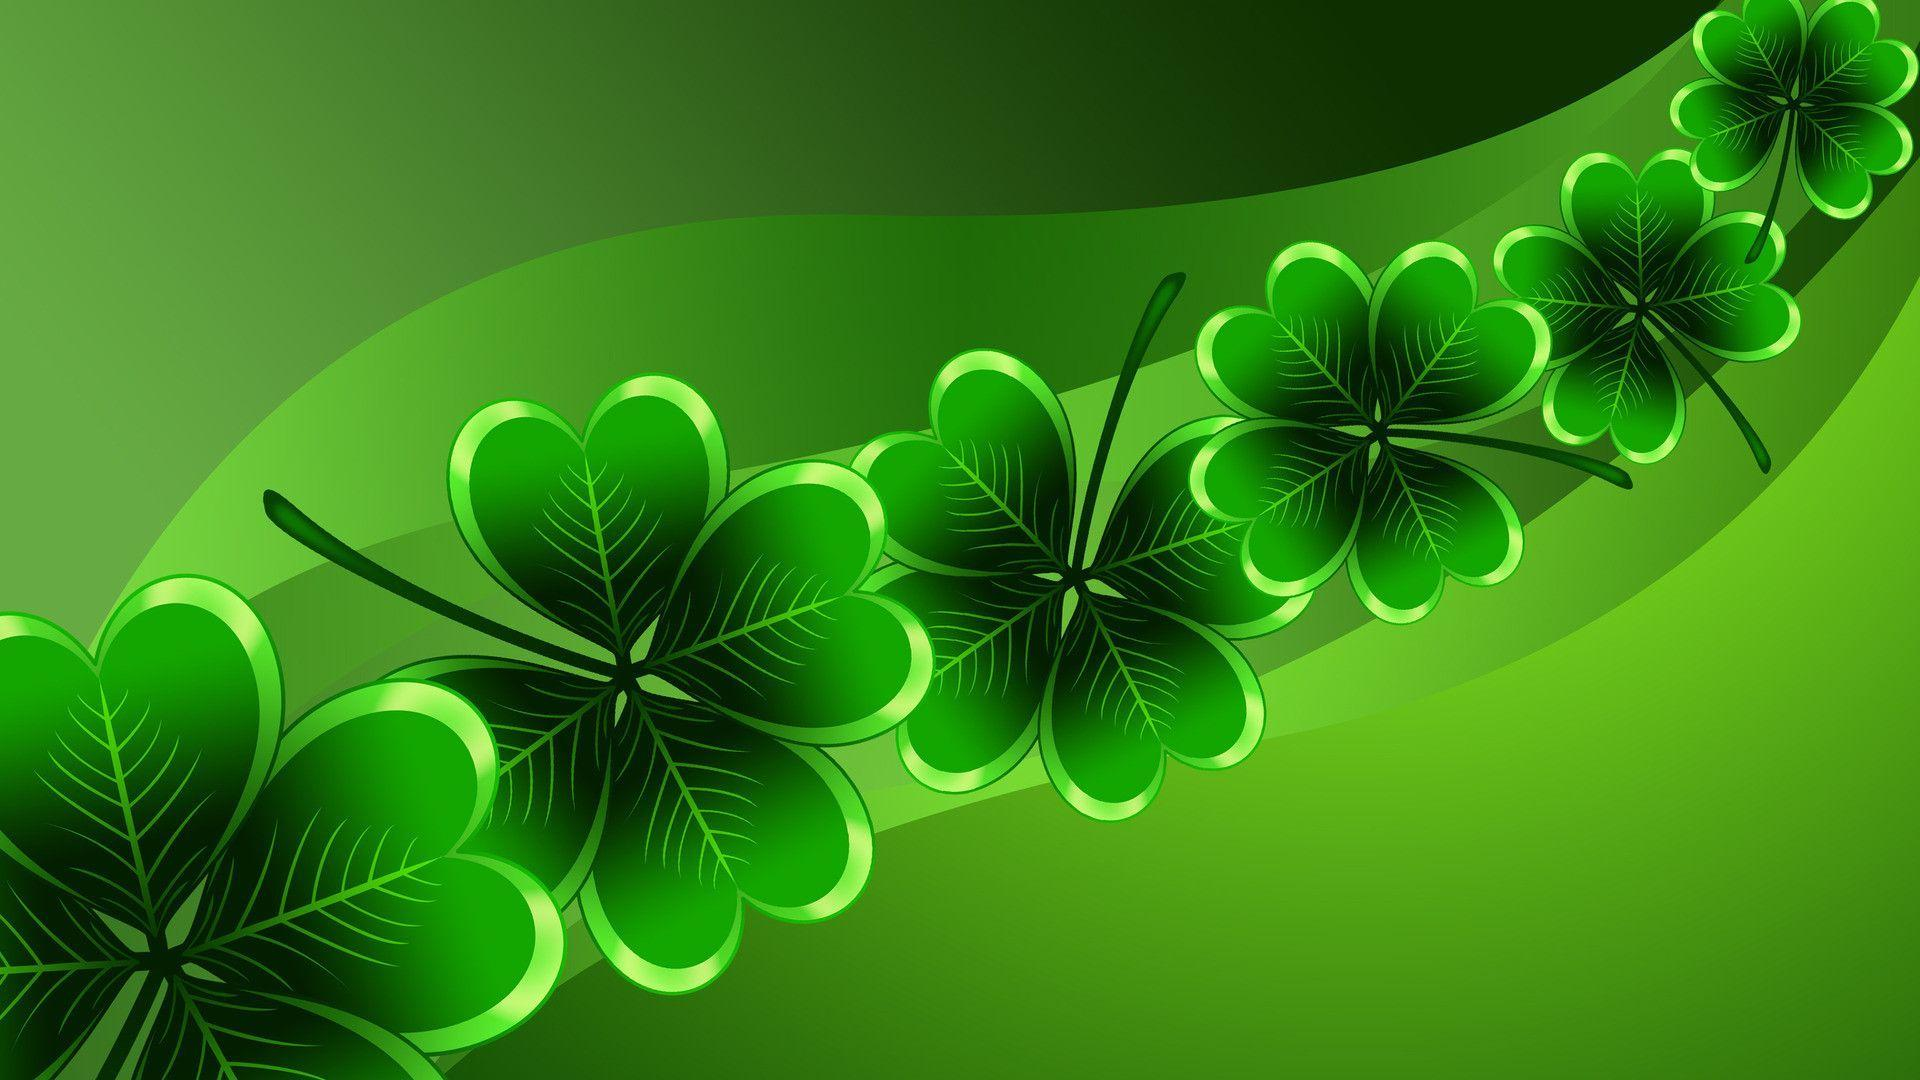 patricks day shamrock background - photo #4